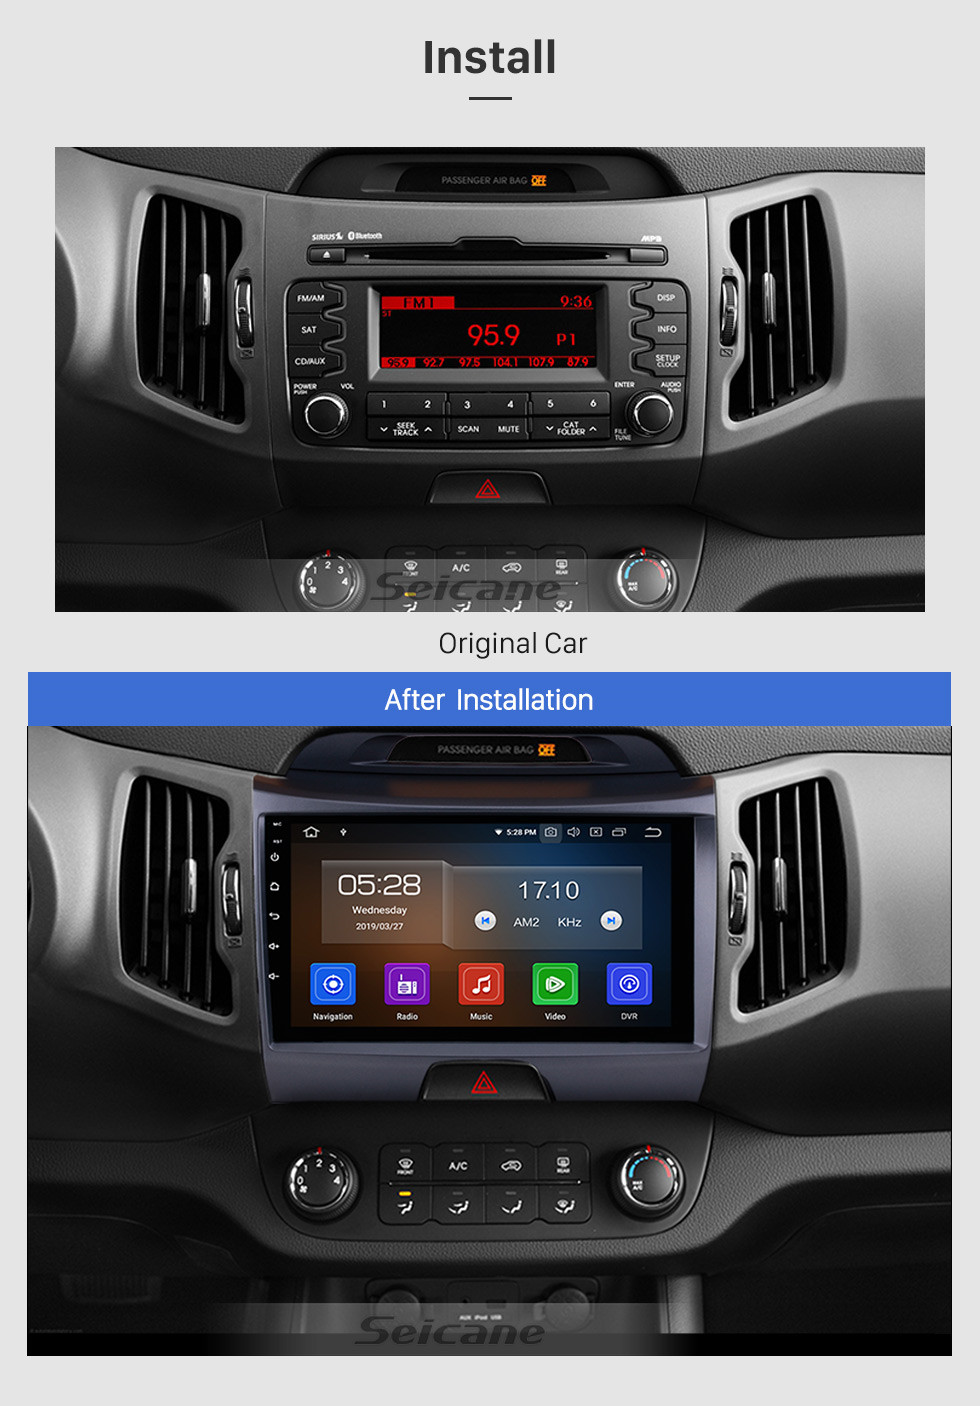 Seicane 9 Inch Android 9.0 Touch Screen radio Bluetooth GPS Navigation system For 2011-2015 KIA Sportage R with TPMS DVR OBD II USB SD 3G WiFi Rear camera Steering Wheel Control HD 1080P Video AUX